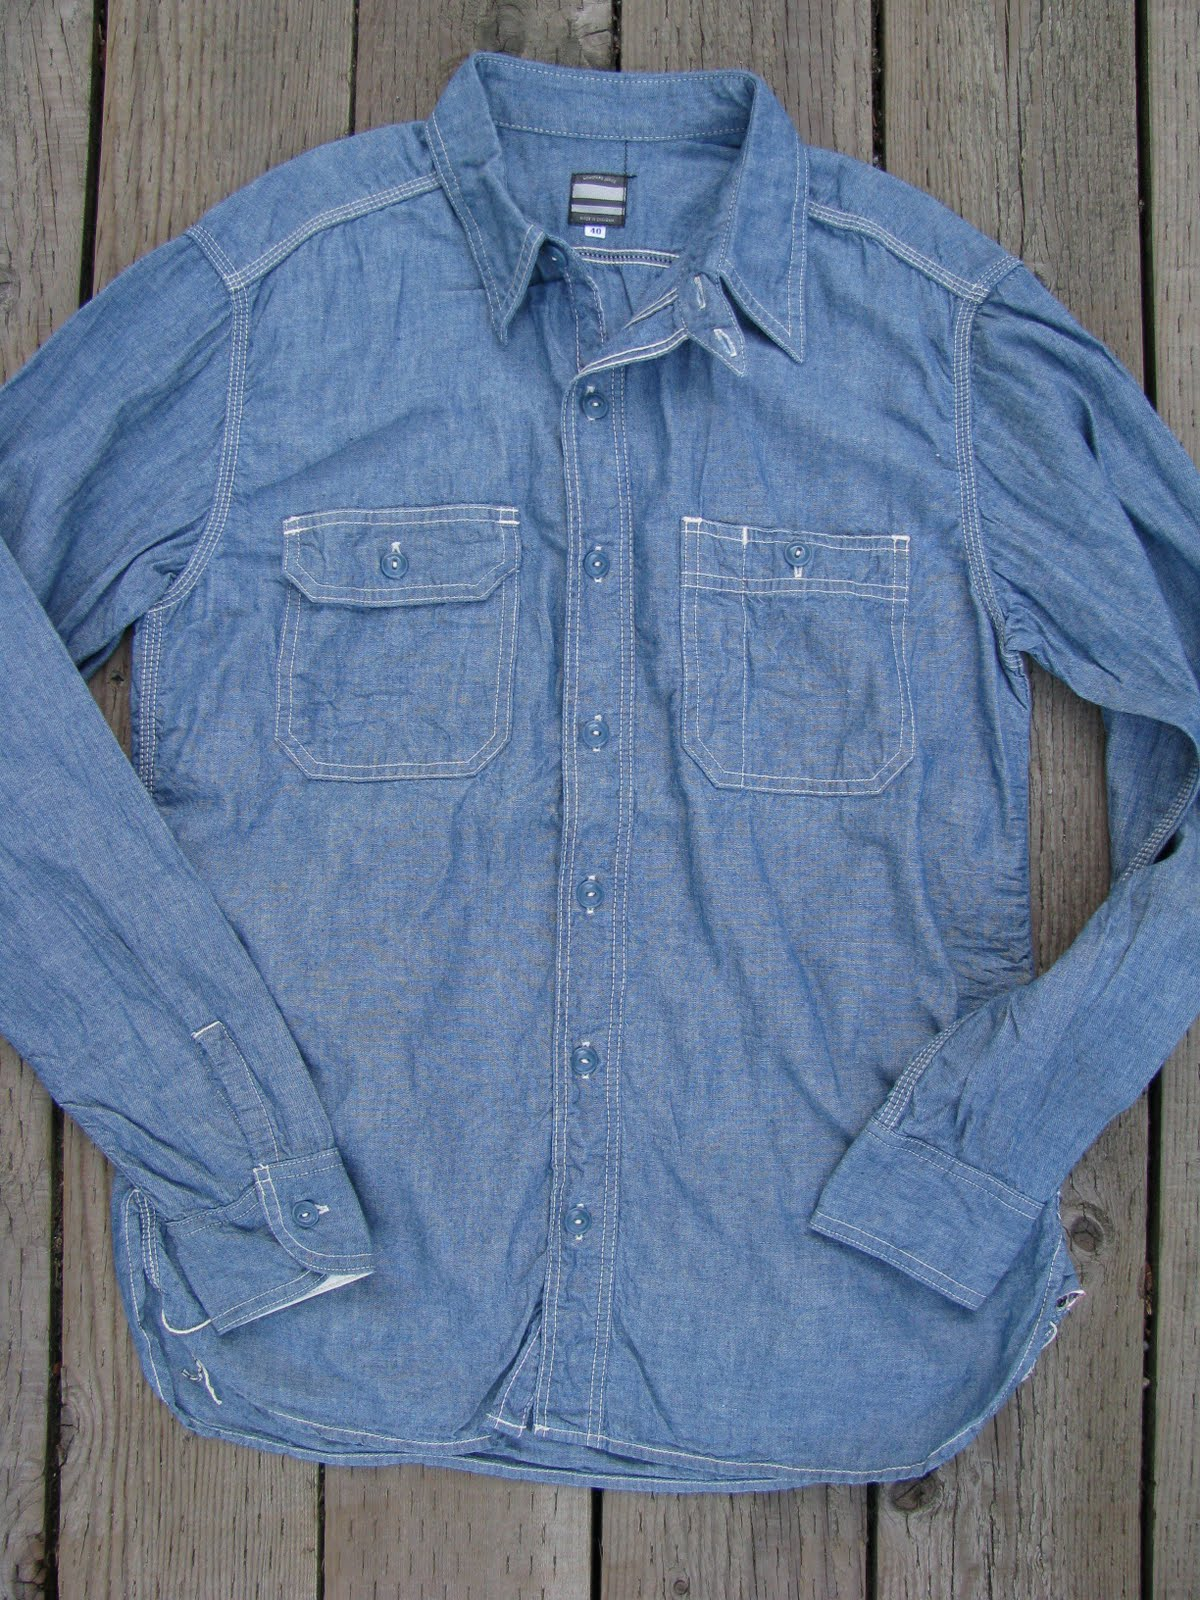 b2d1bdf7931 Momotaro 5oz Selvedge Chambray Work Shirts